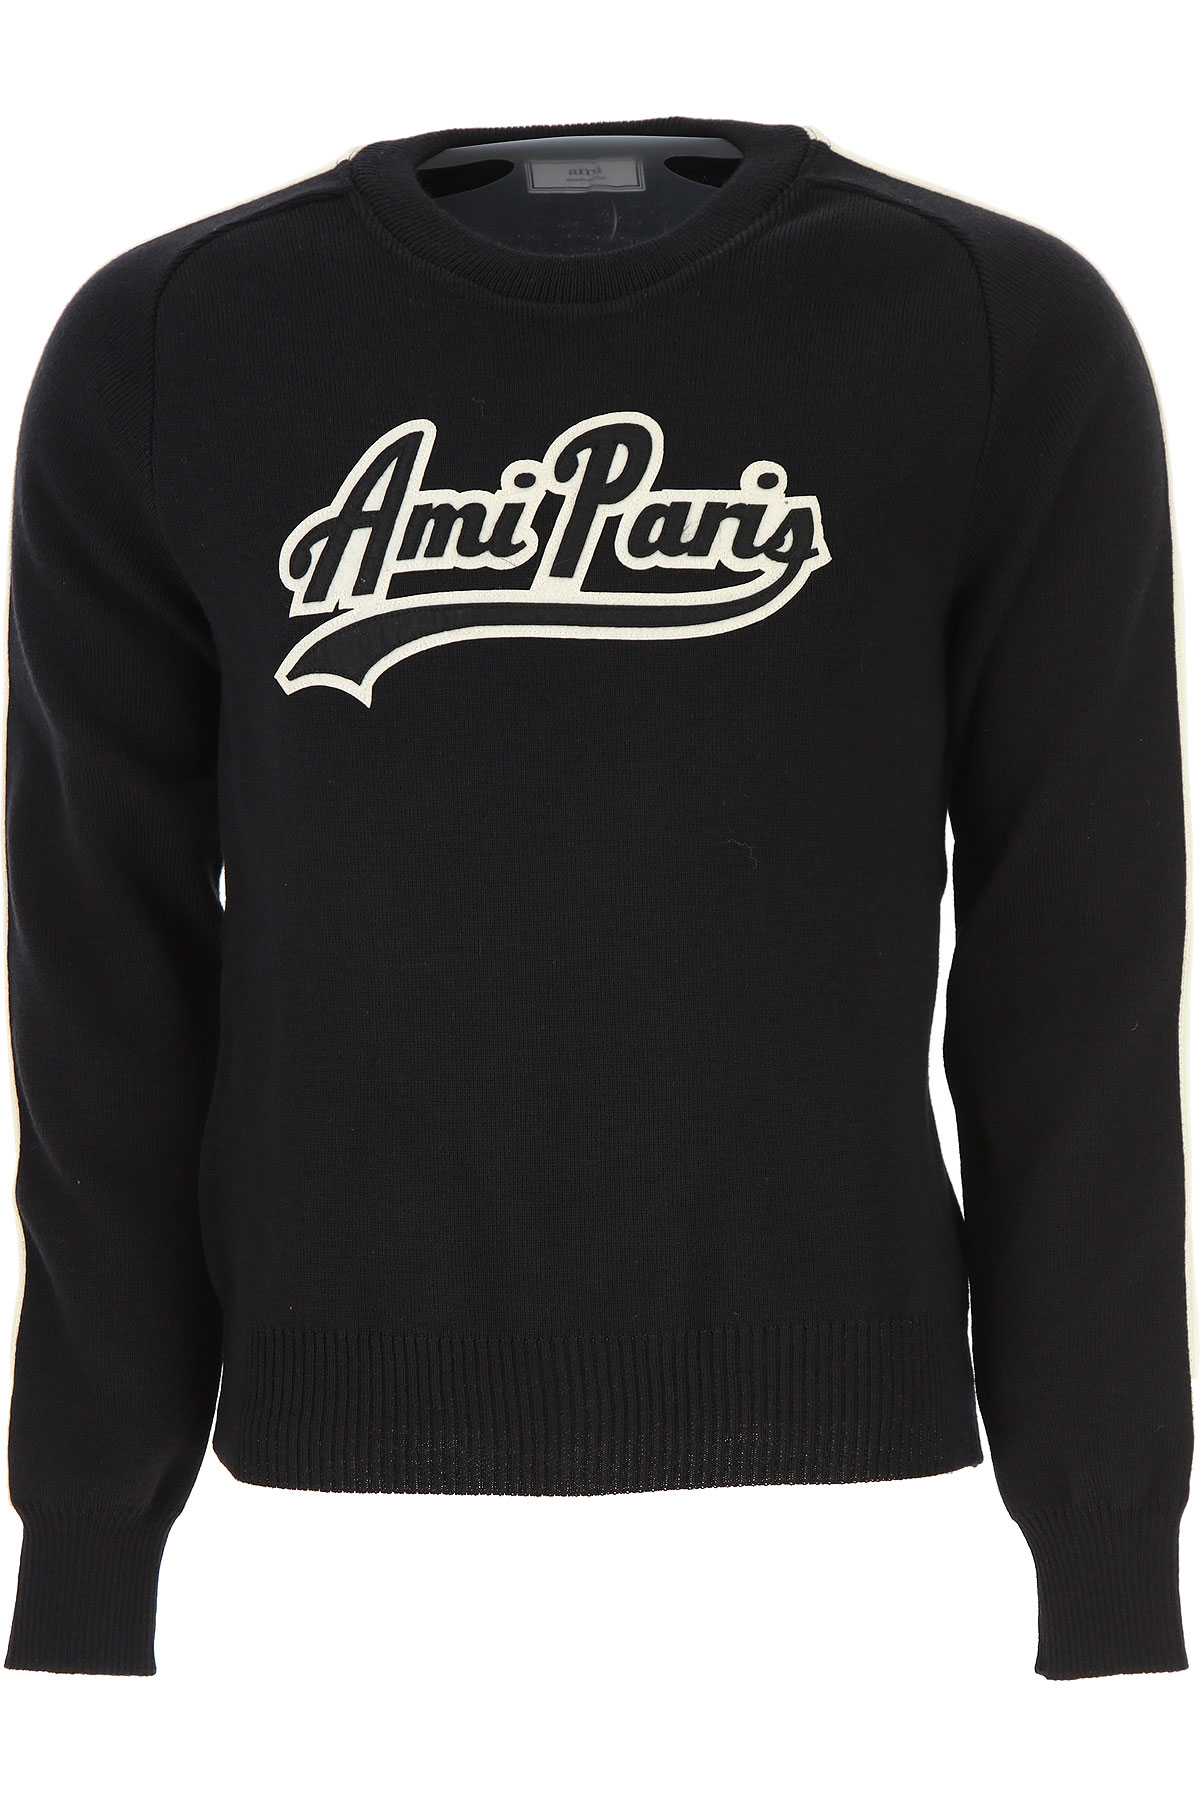 Image of Ami Sweater for Men Jumper, Black, Wool, 2017, L M XL